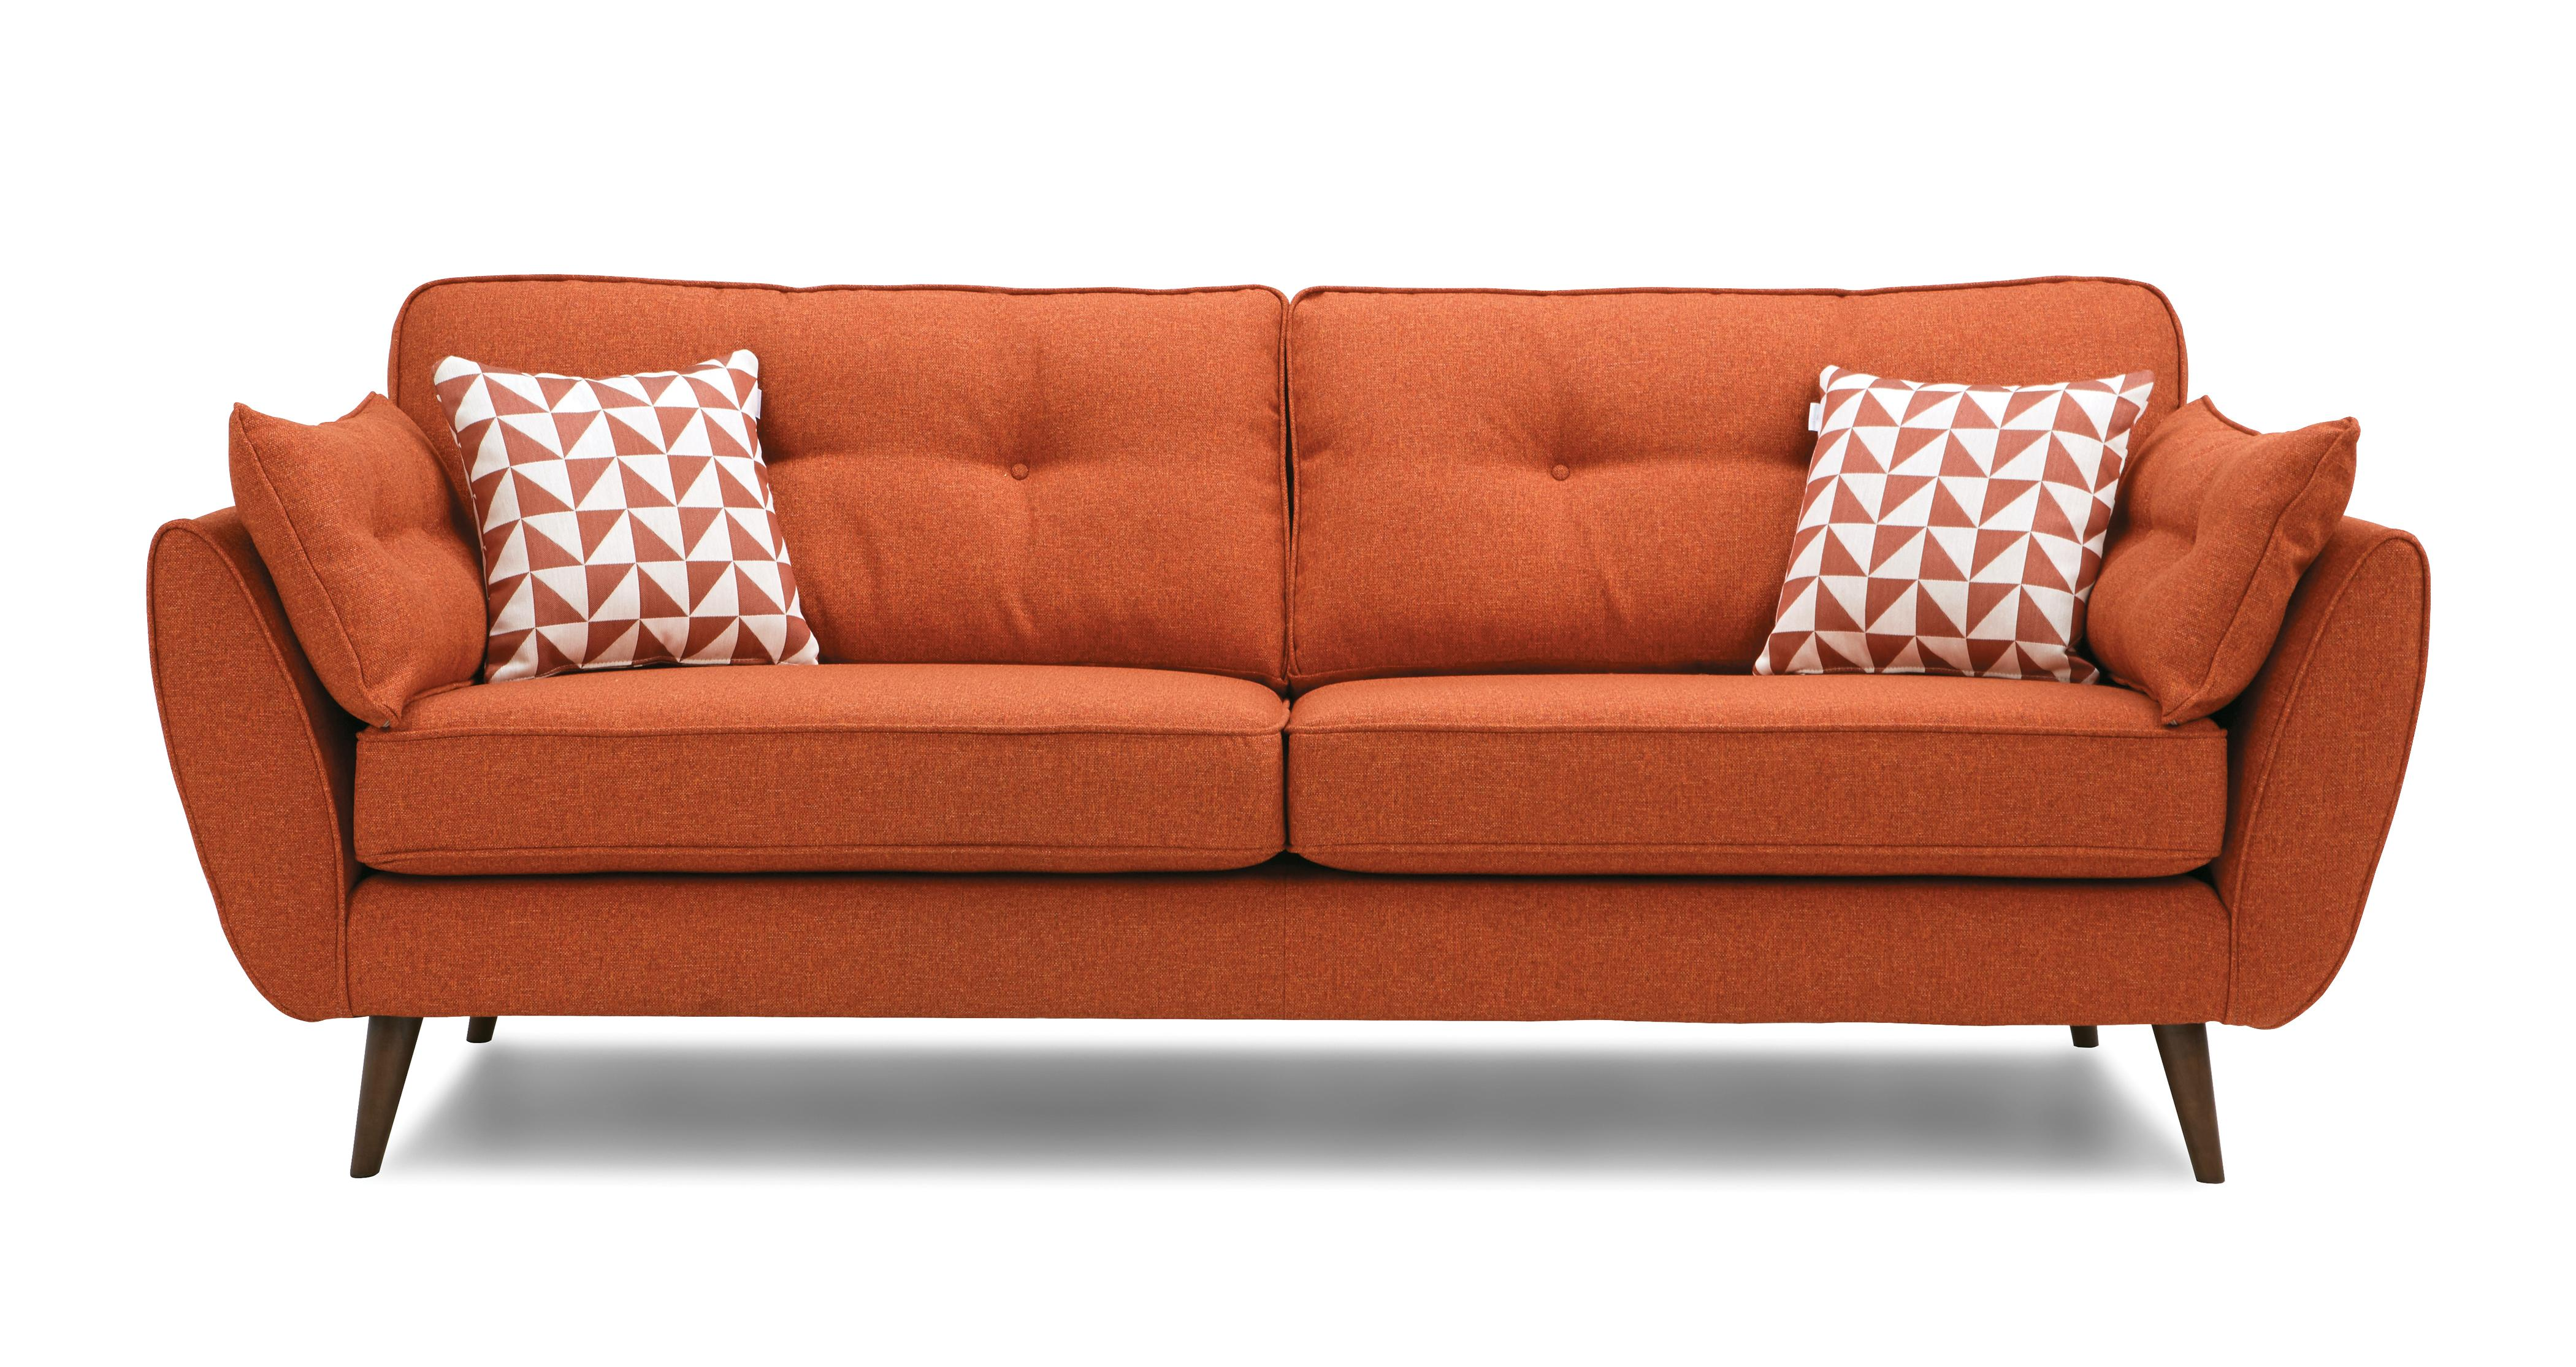 orange sofa uk large yellow cushions fabric sofas that are perfect for your home oranges dfs winter sale zinc 4 seater french connection